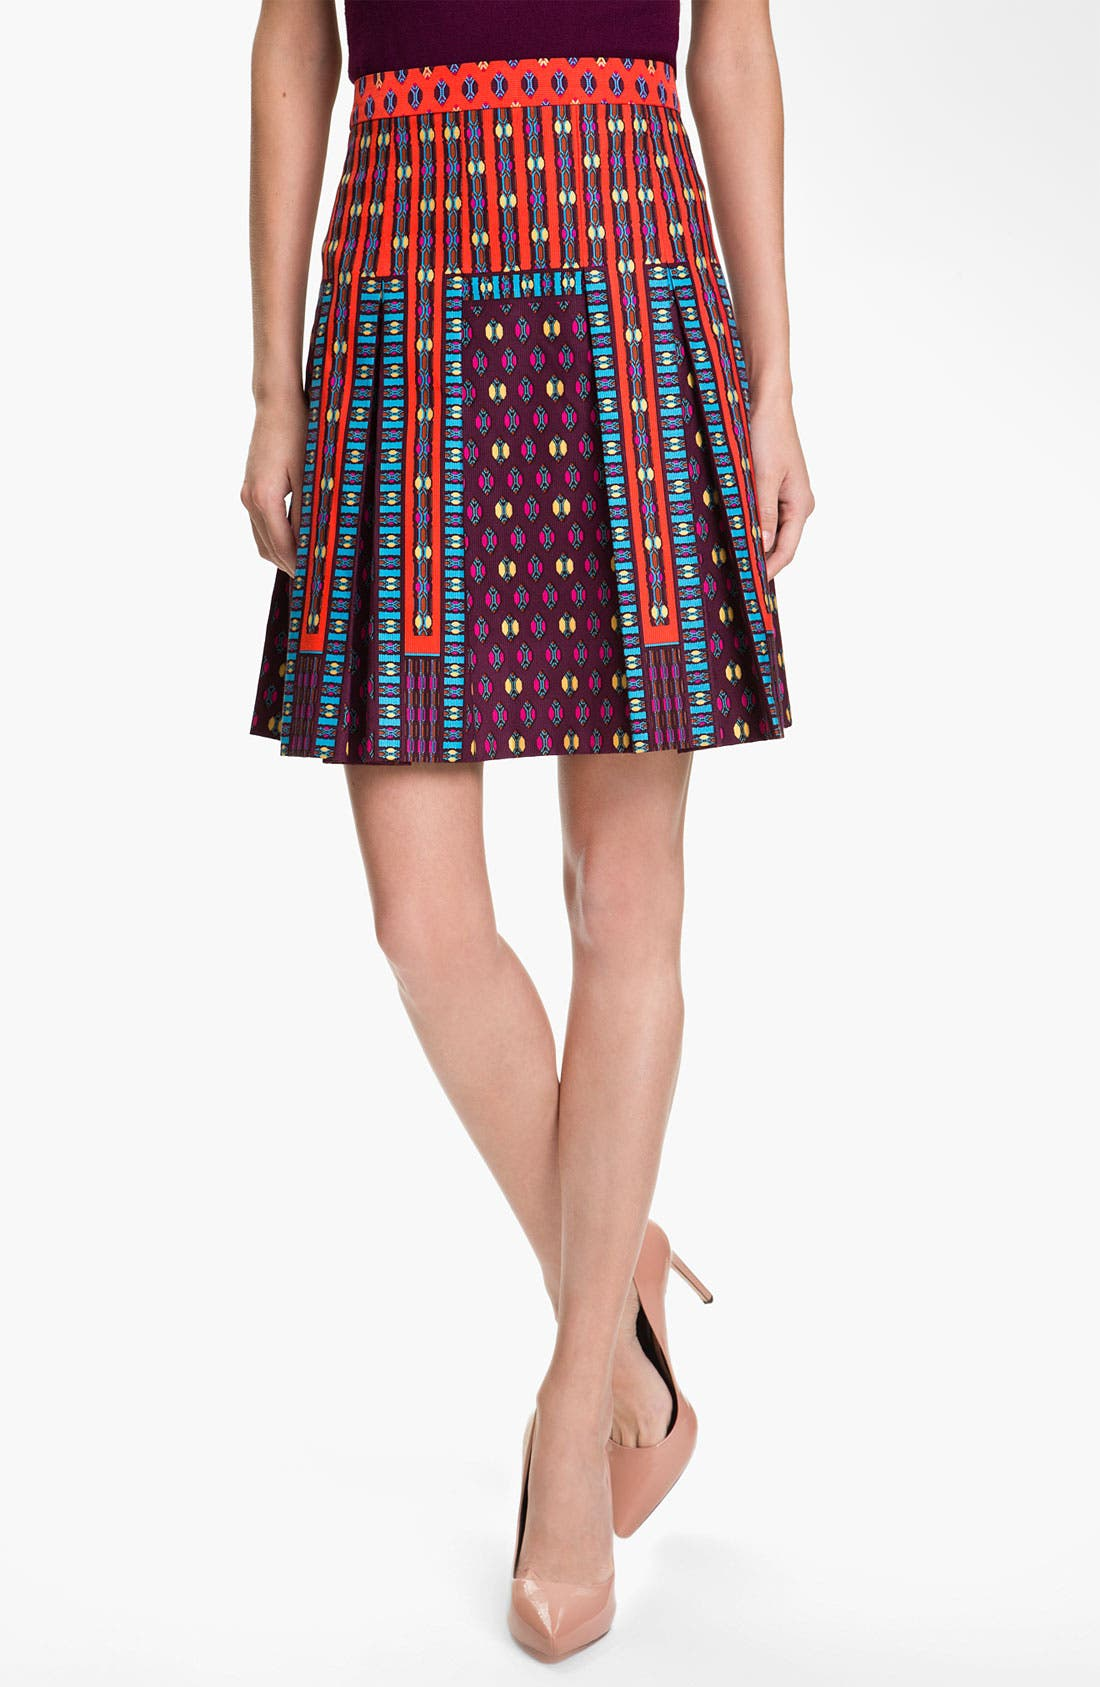 Alternate Image 1 Selected - Nanette Lepore 'Universe' Pleated A-Line Skirt